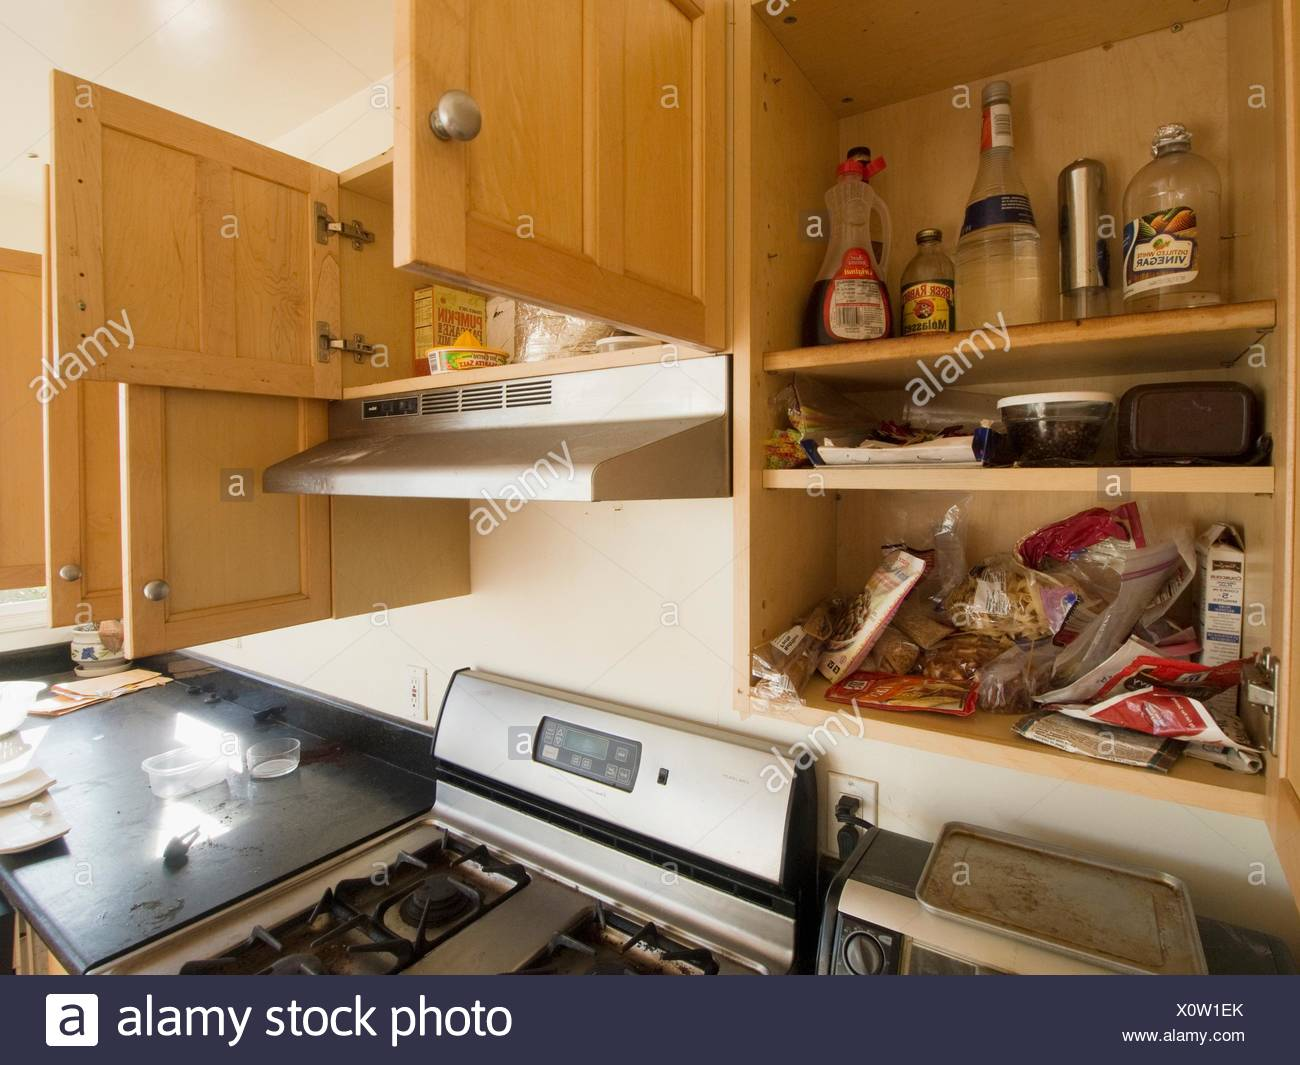 Some packaged foods and products remain in the cabinets of a kitchen inside a foreclosed home in Oakland, California, Uniited Stock Photo